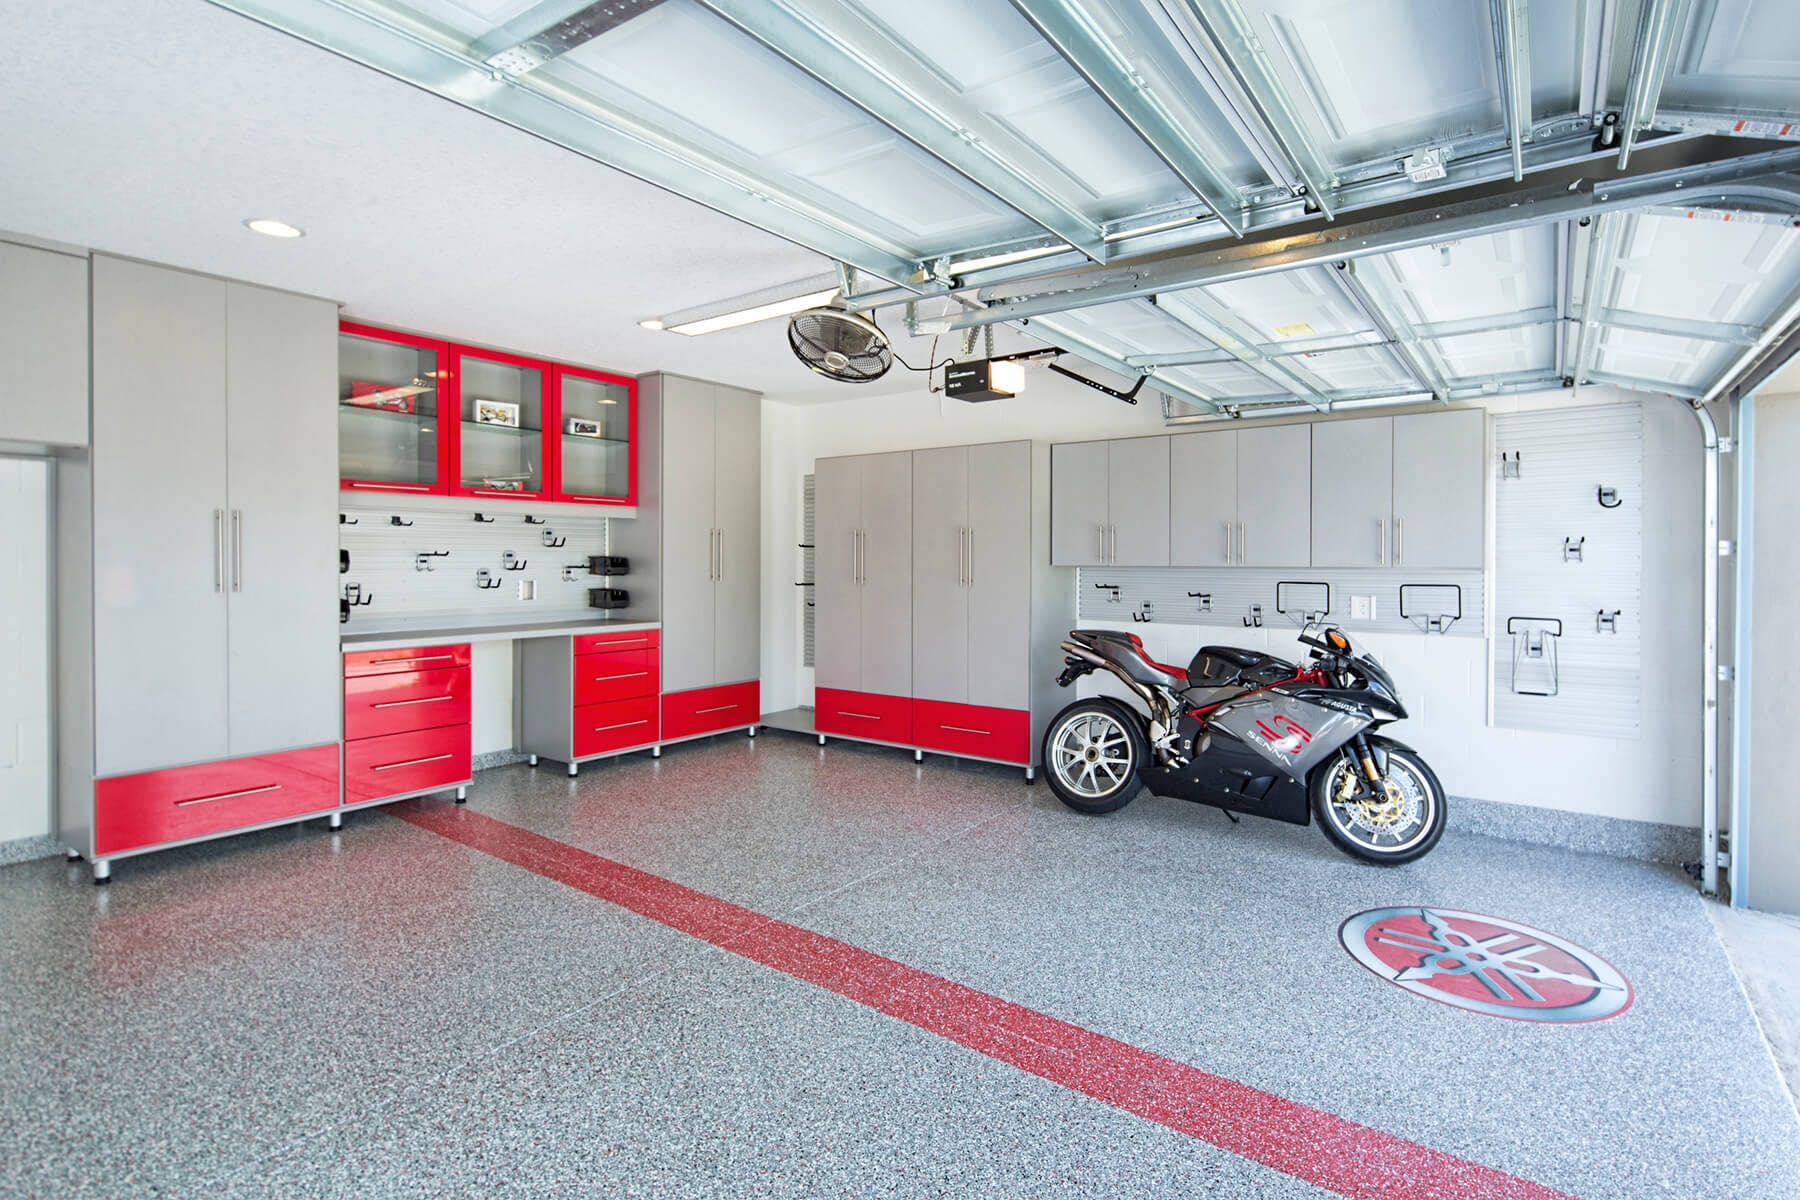 Garage Upper Cabinets Over Motorcycle